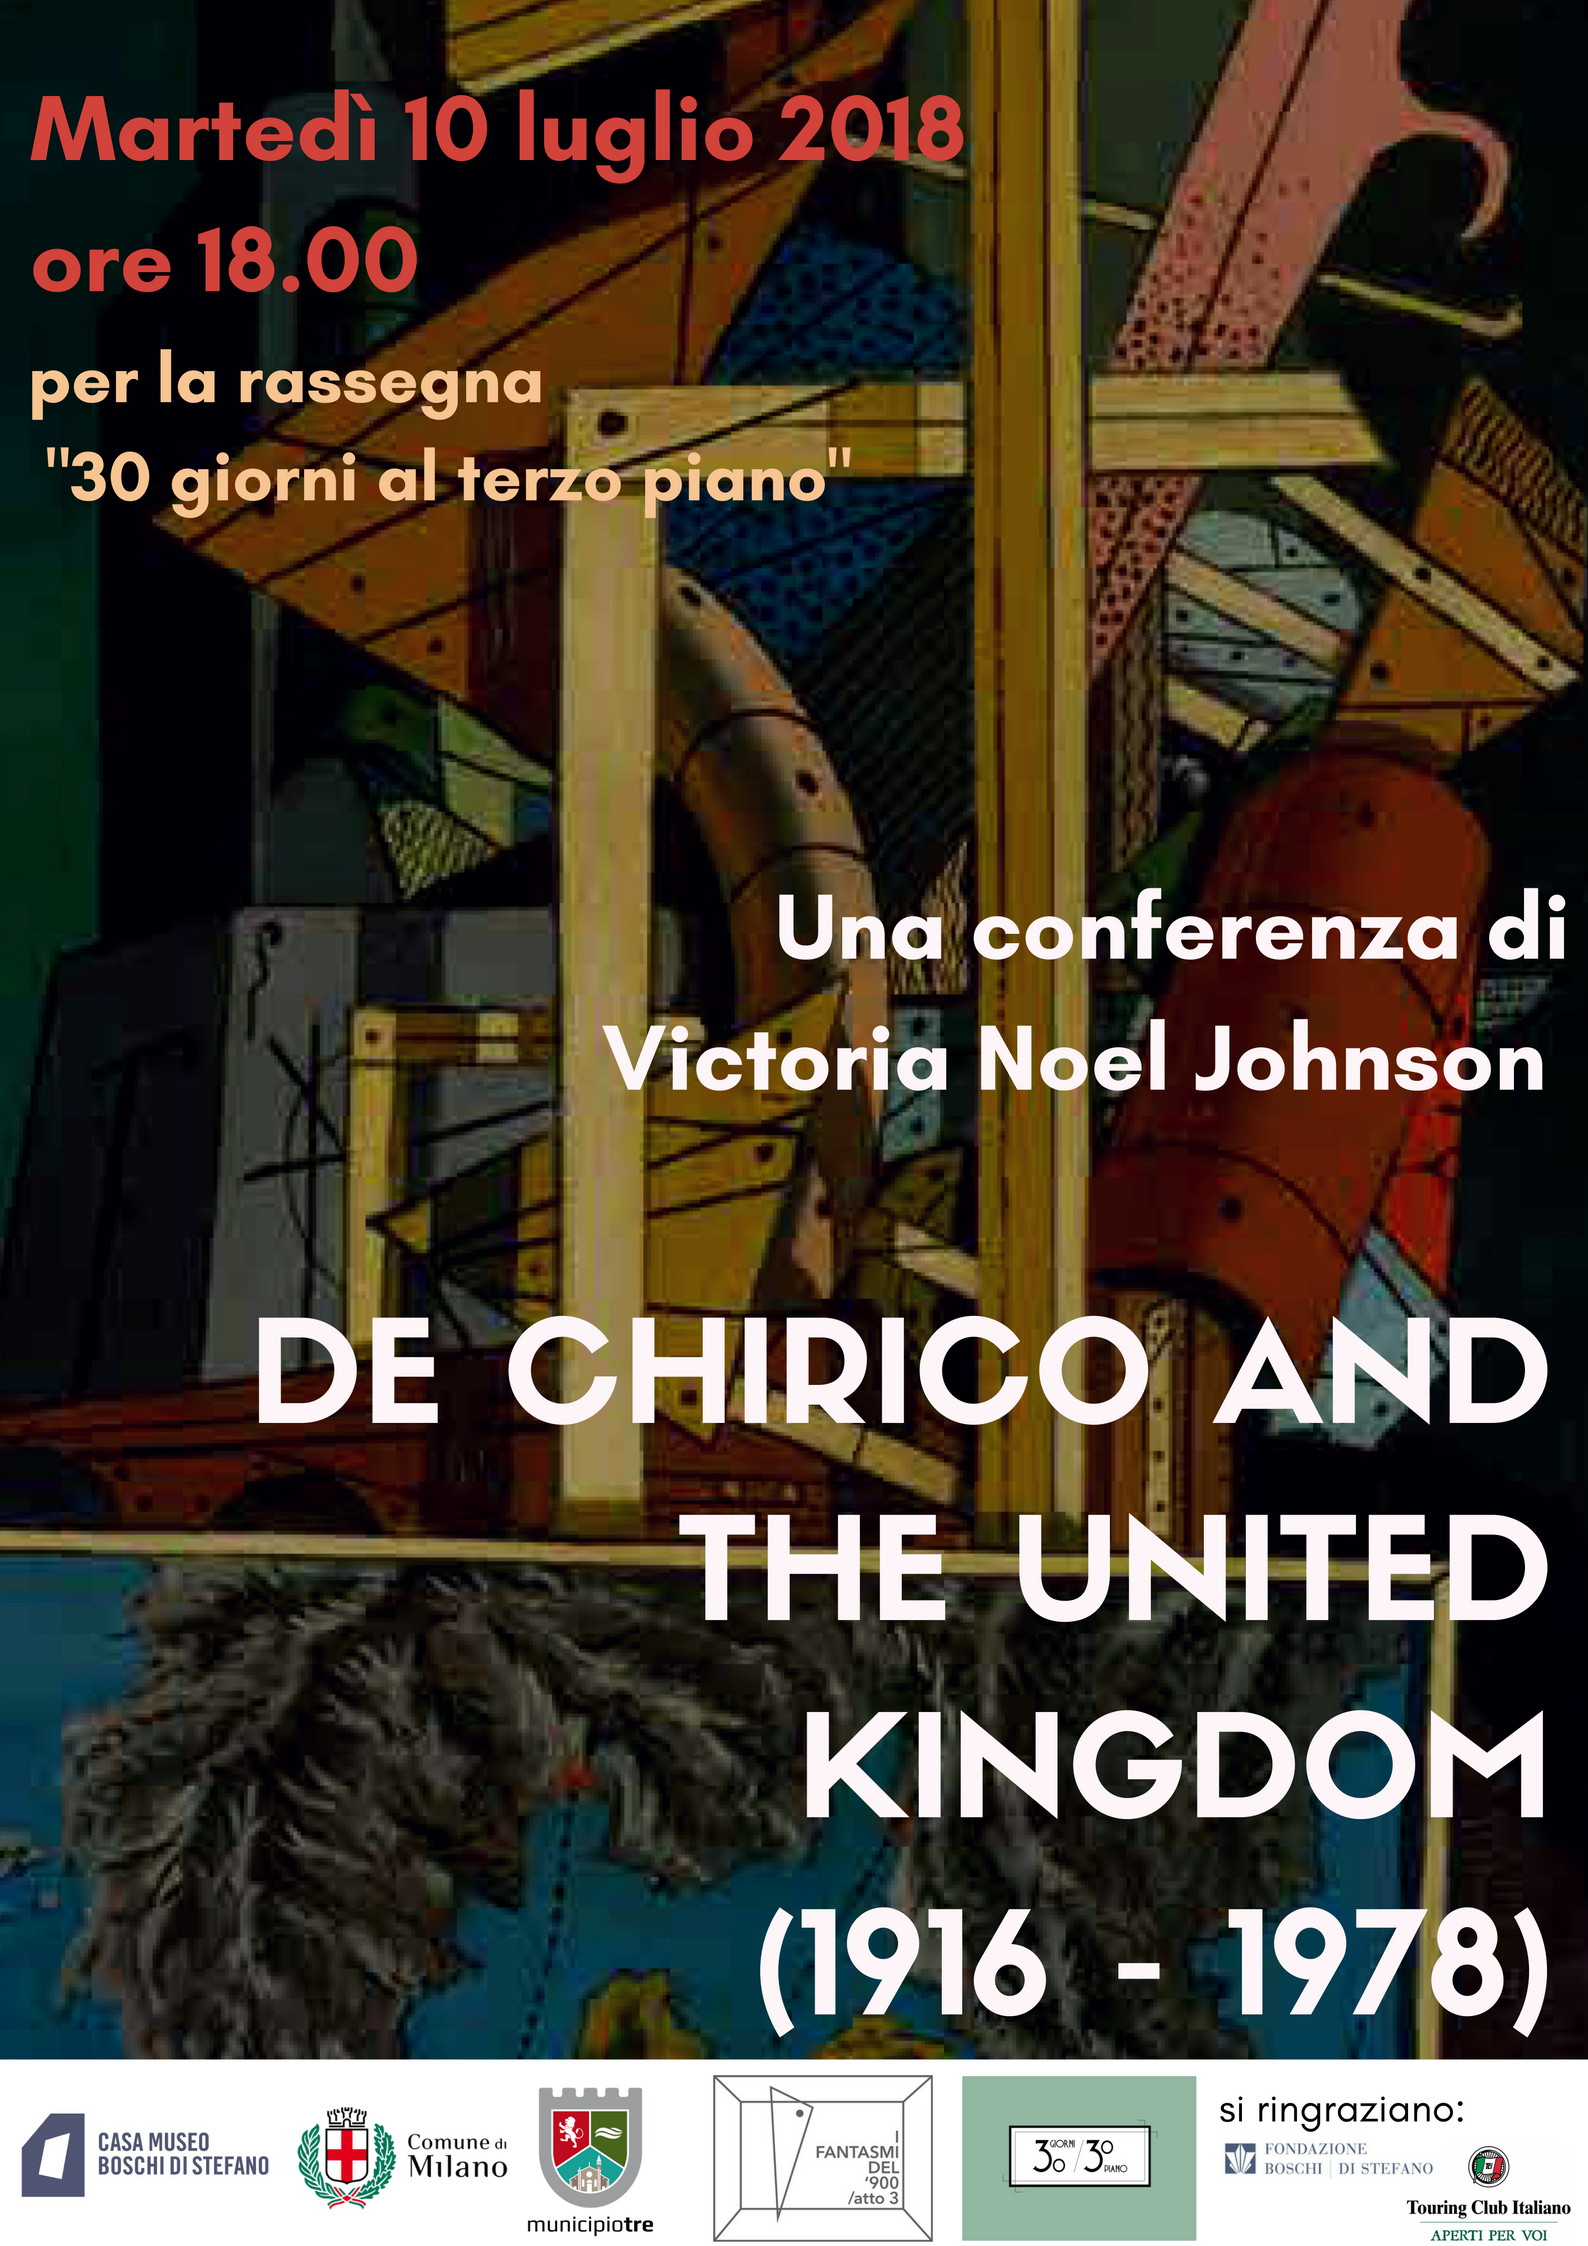 Book conference, Milan